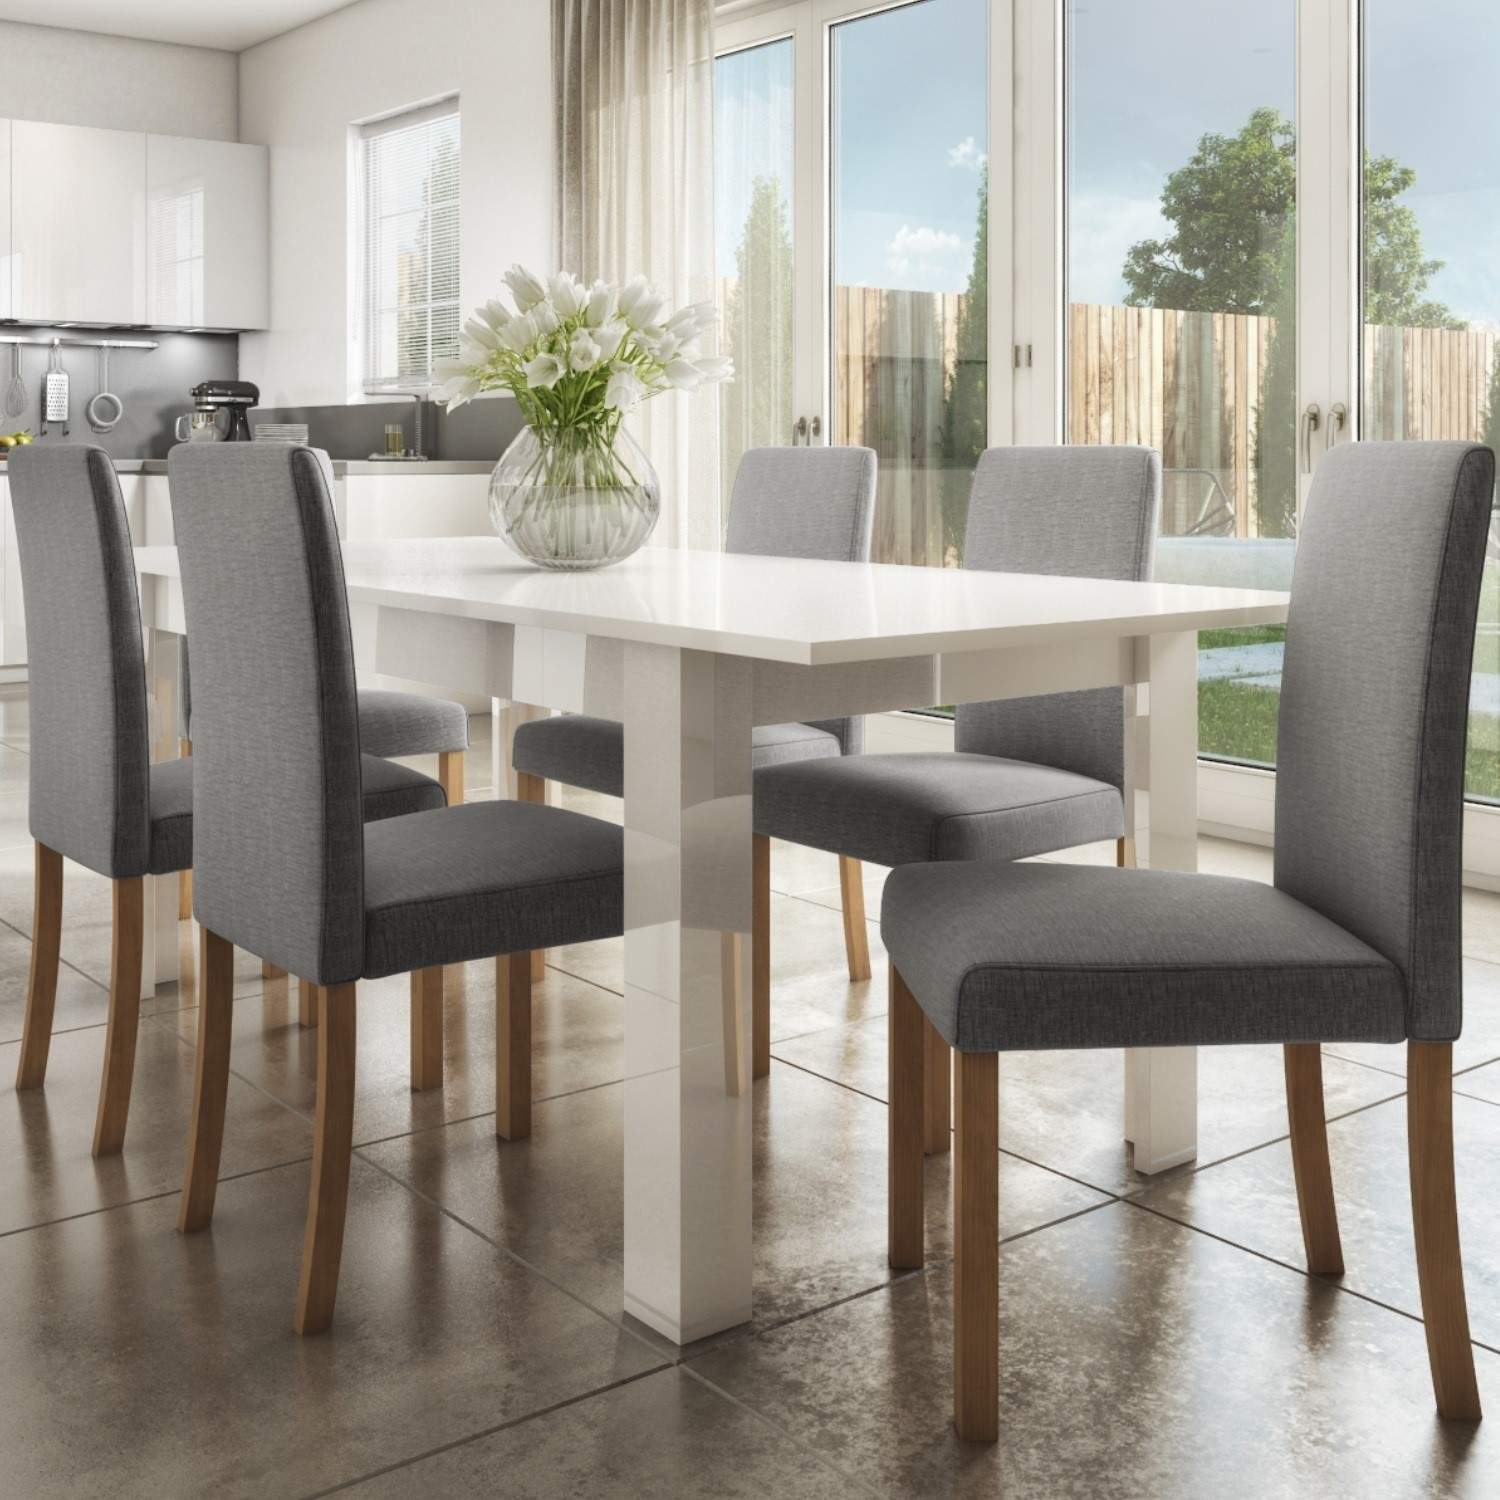 Details about Vivienne White High Gloss Kitchen Dining Table + 12 Grey  Fabric Chairs